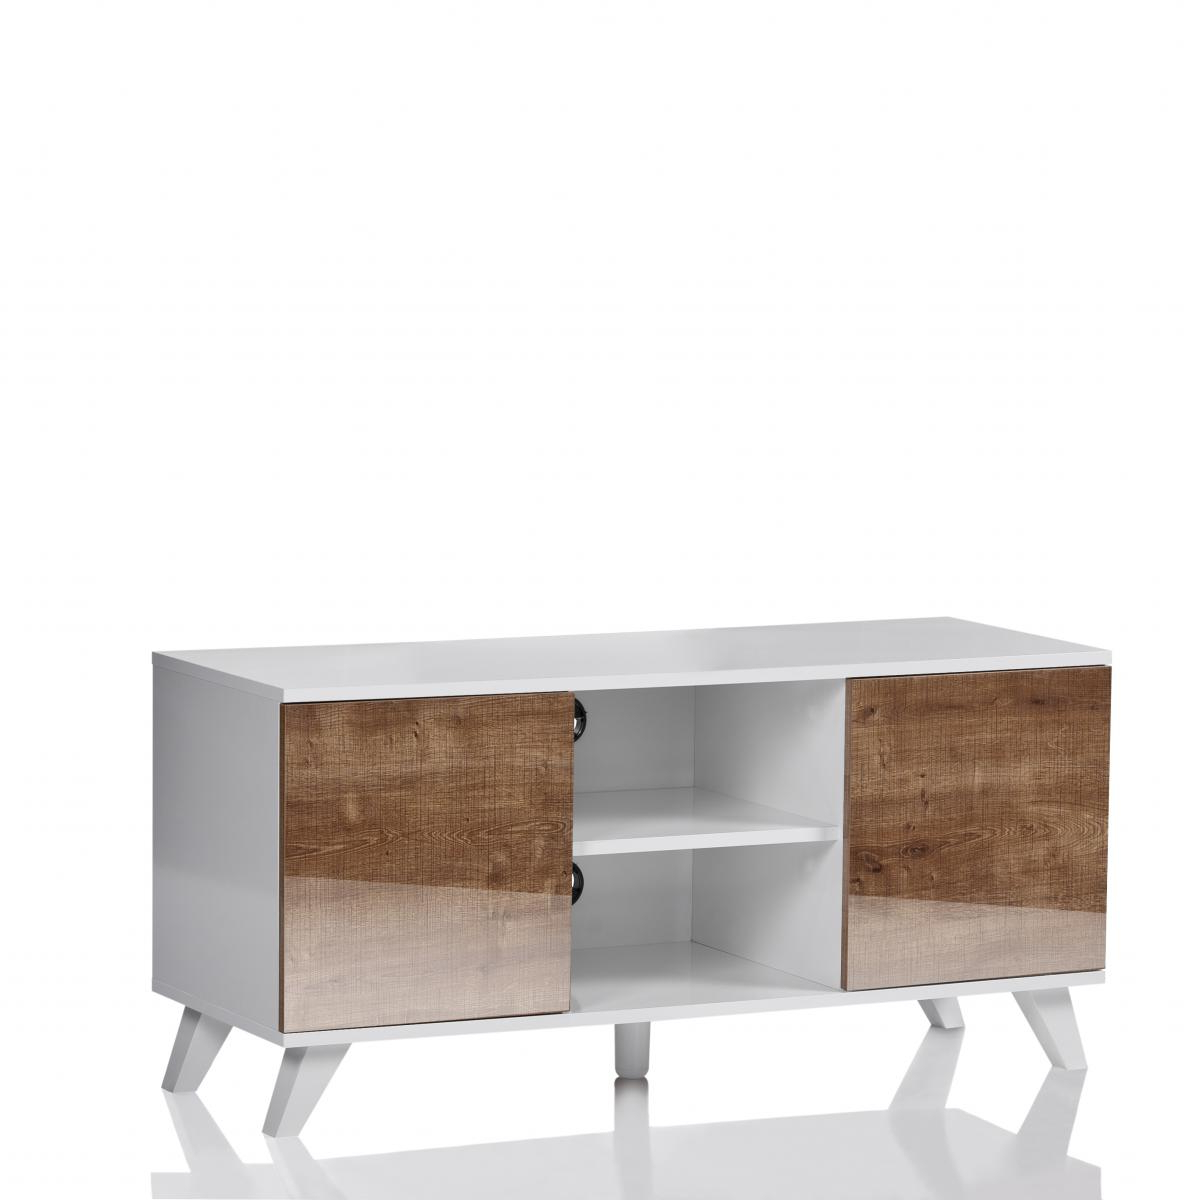 0413 Ukcf Milan White Gloss Corner Tv Stand 150Cm Within 2017 Corner Tv Unit White Gloss (Gallery 19 of 20)